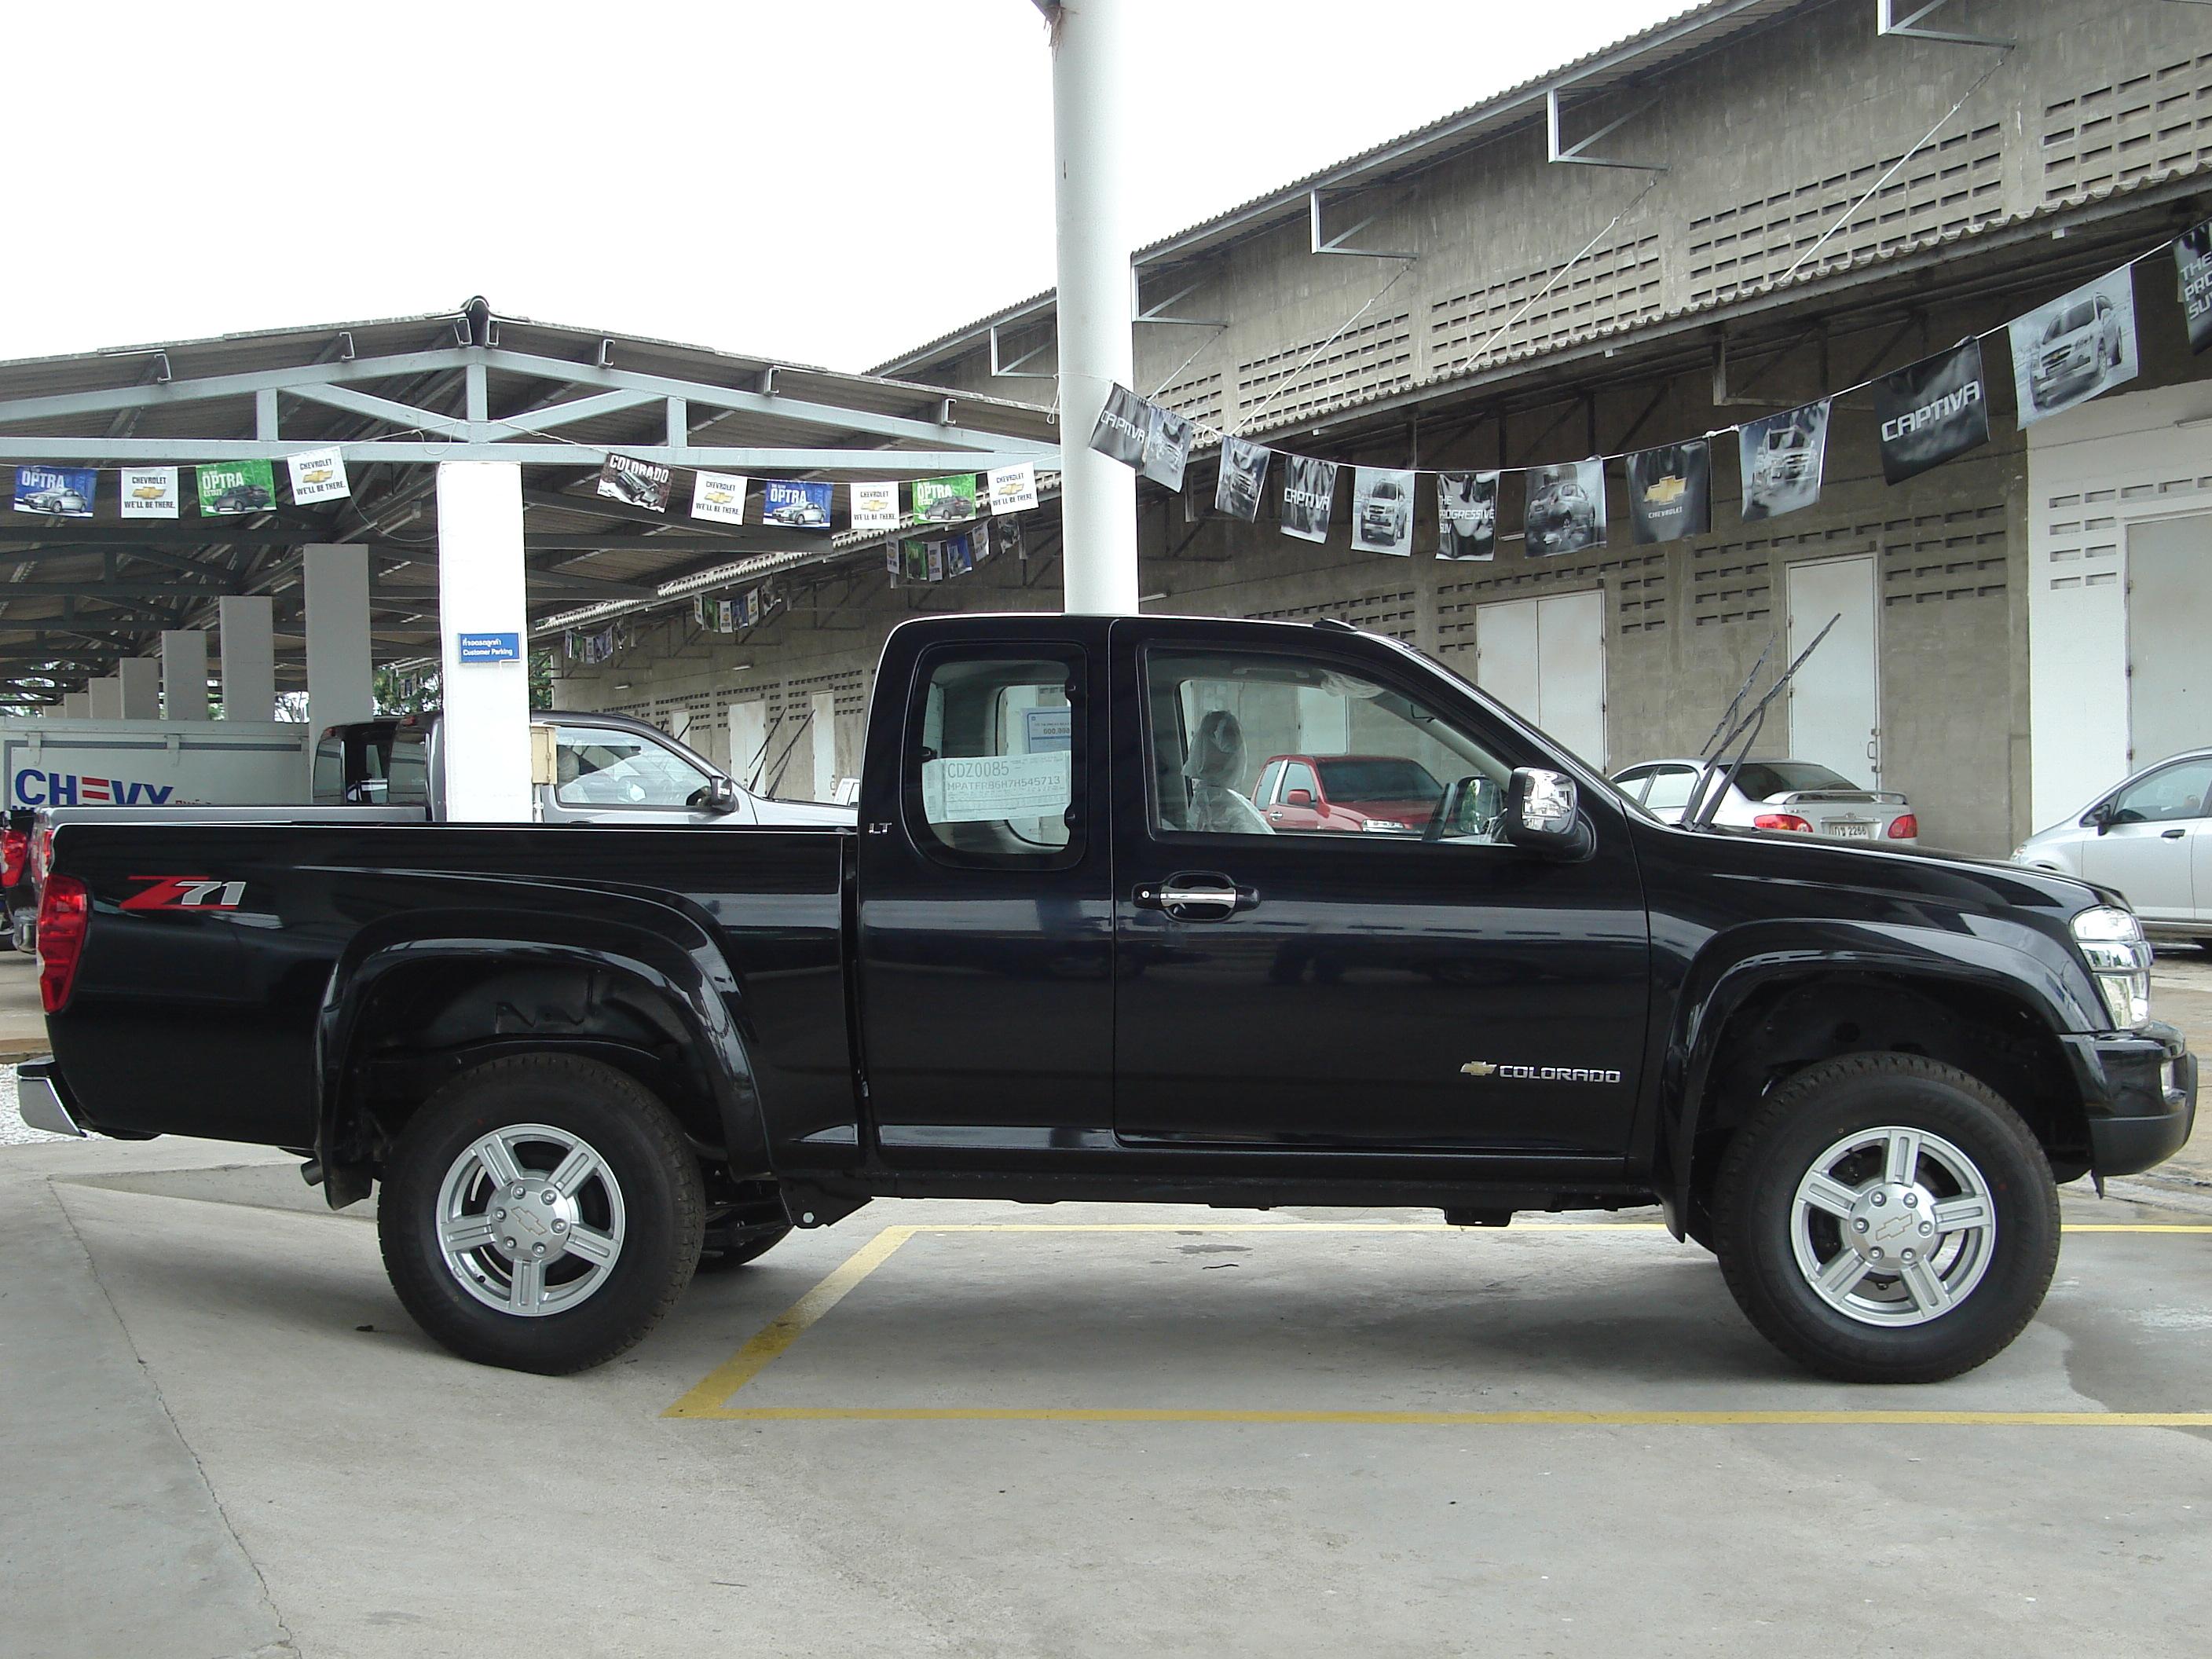 2007 chevrolet colorado 17 chevrolet colorado 17